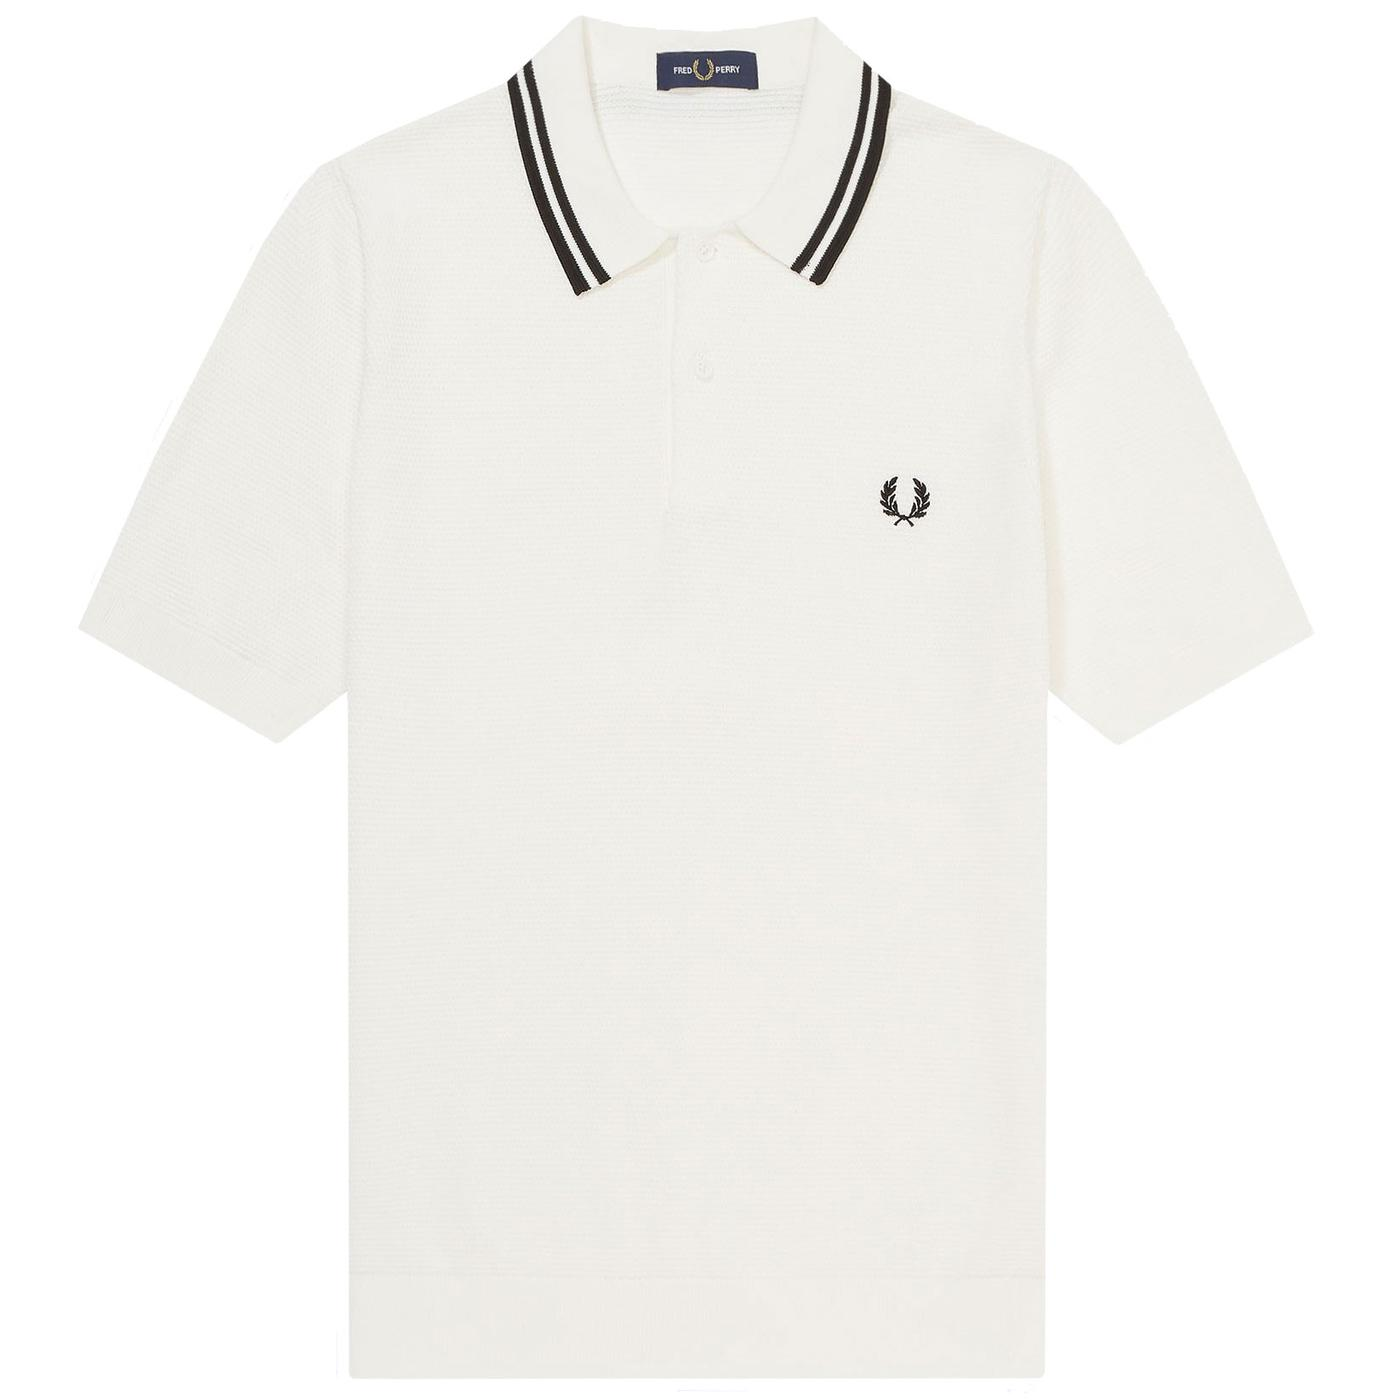 FRED PERRY Texture Knit Twin Tipped Polo Shirt SW